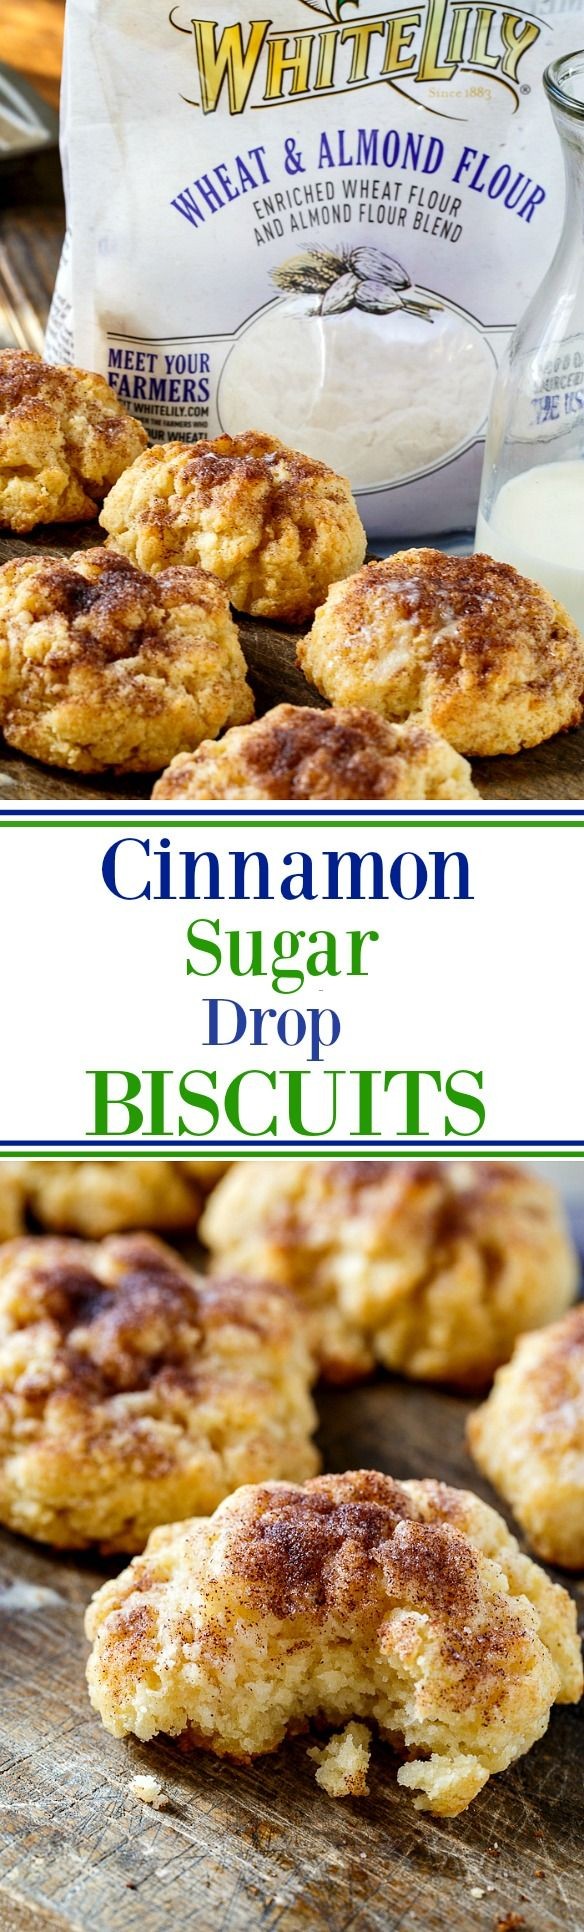 Cinnamon-Sugar Drop Biscuits are so tender and buttery!